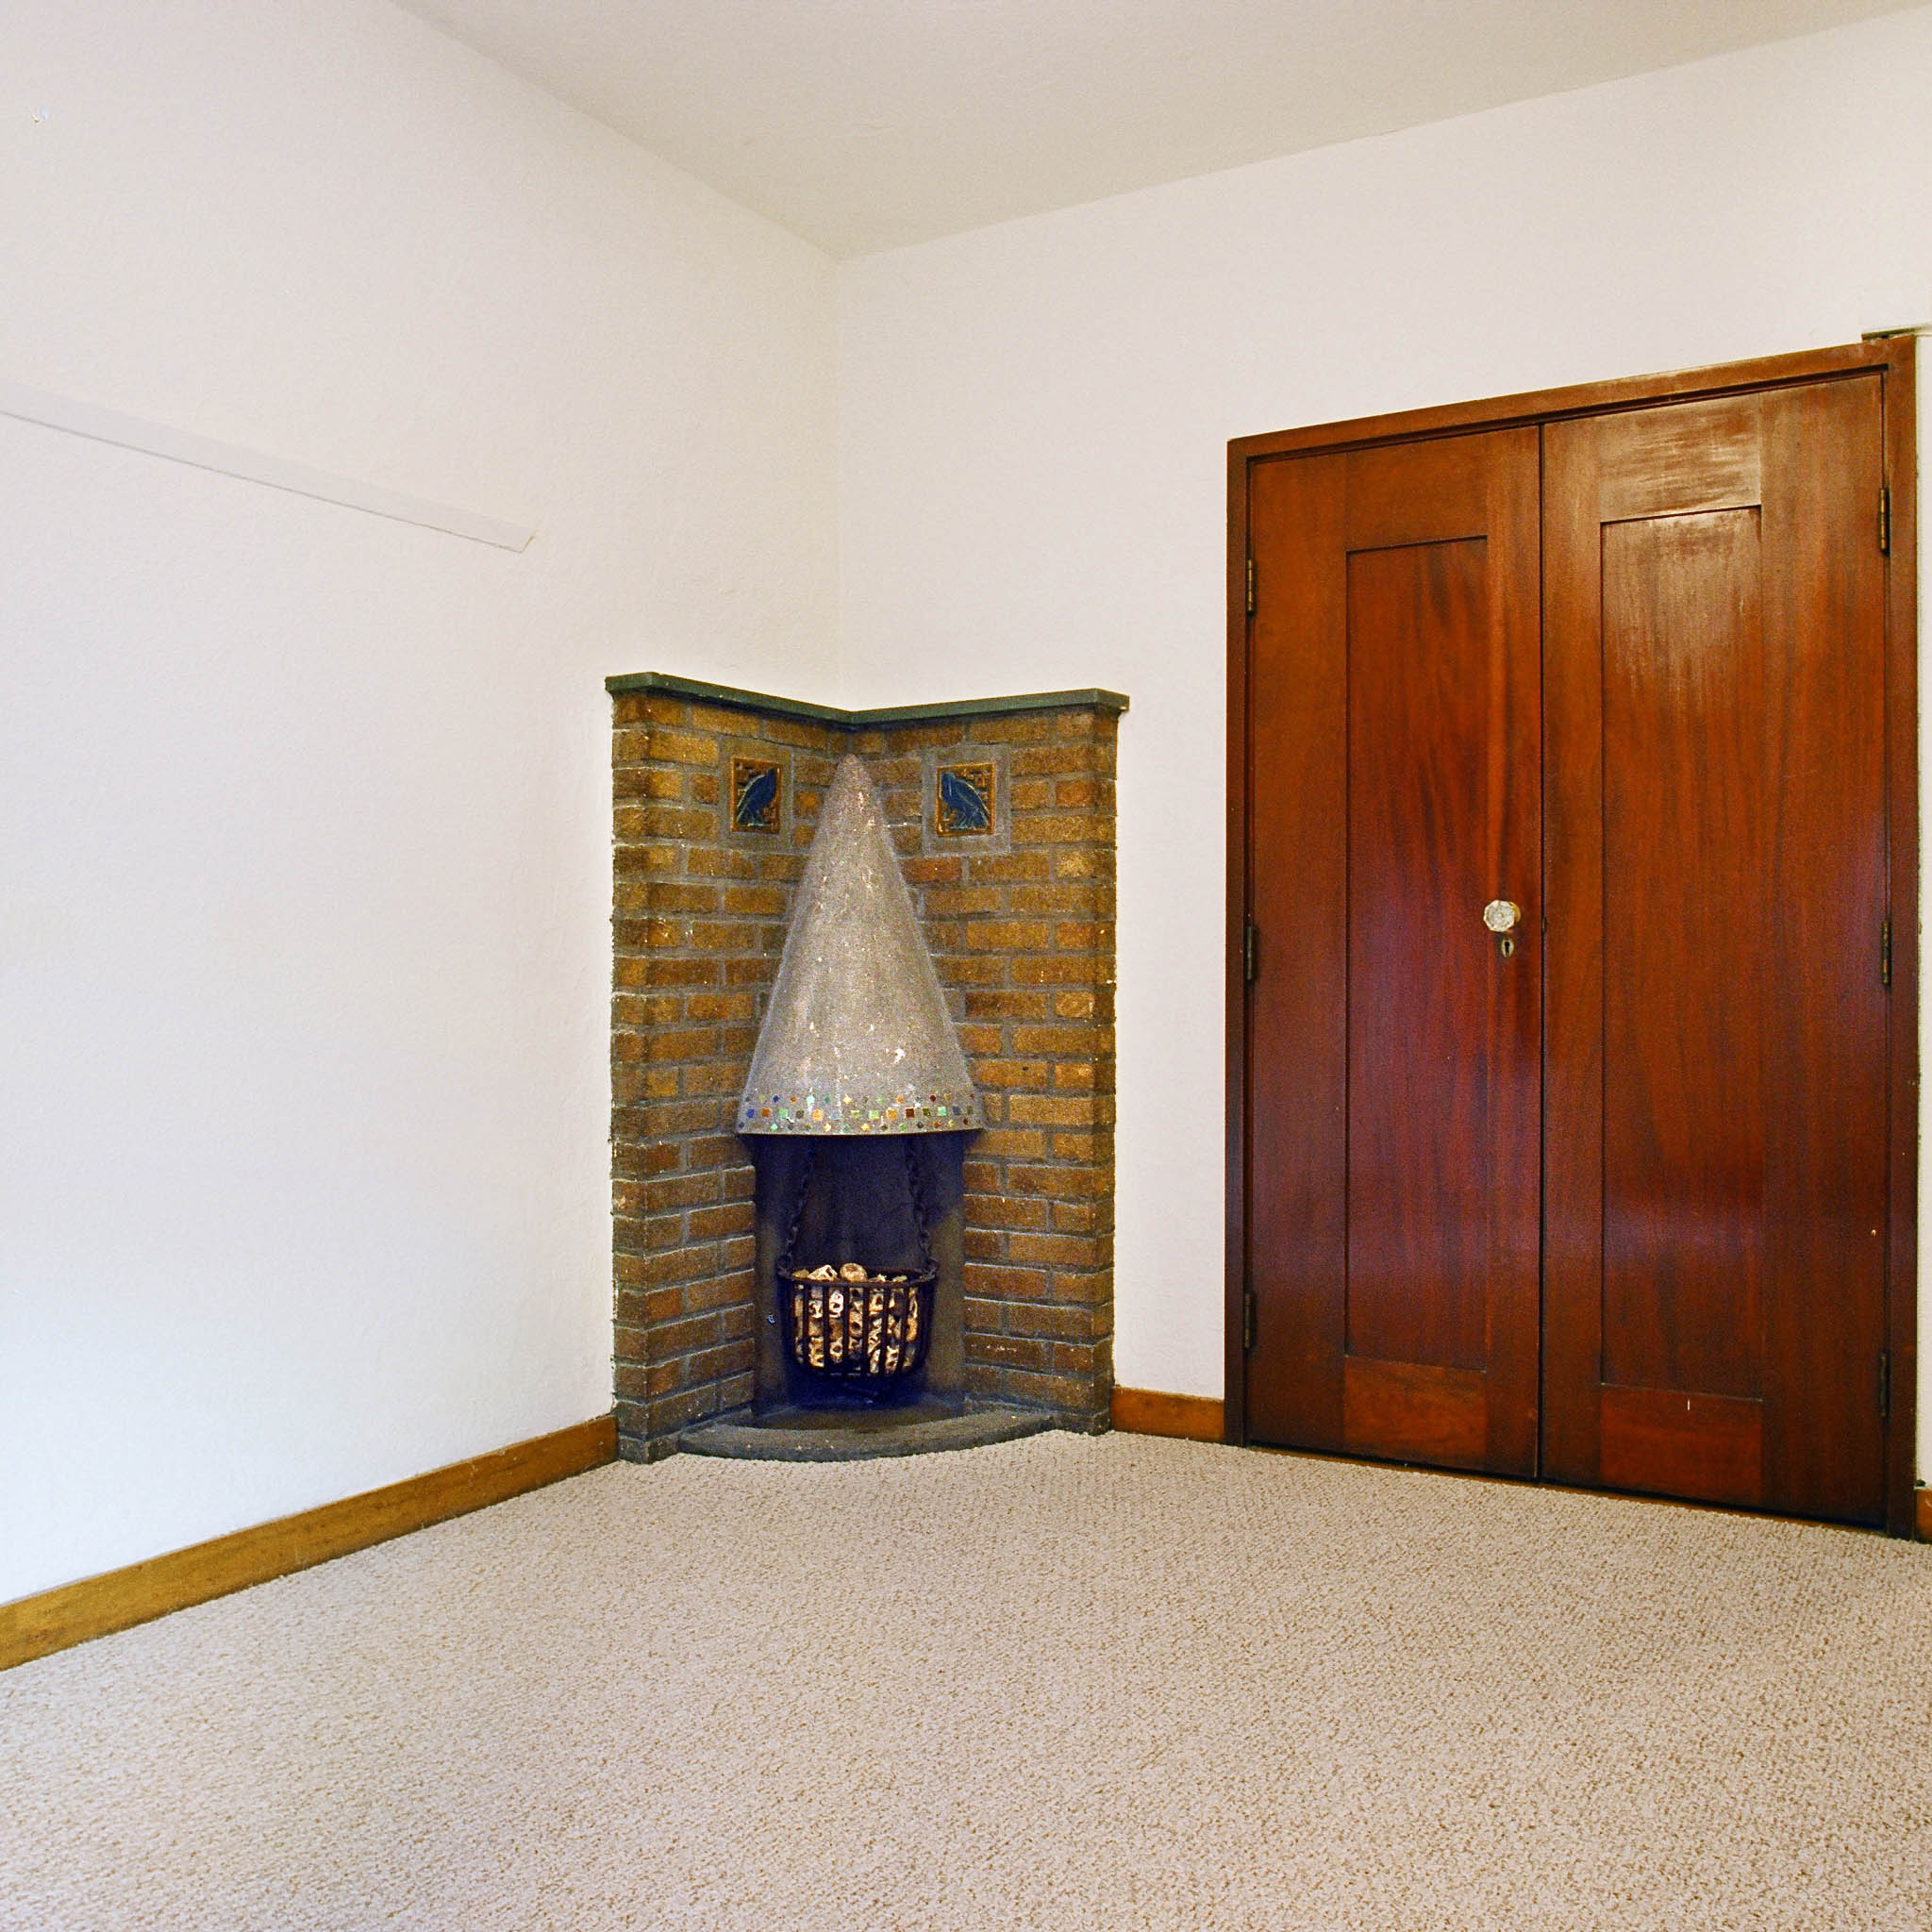 interior of 342 S. Highland Ave, Apt. 13B 1